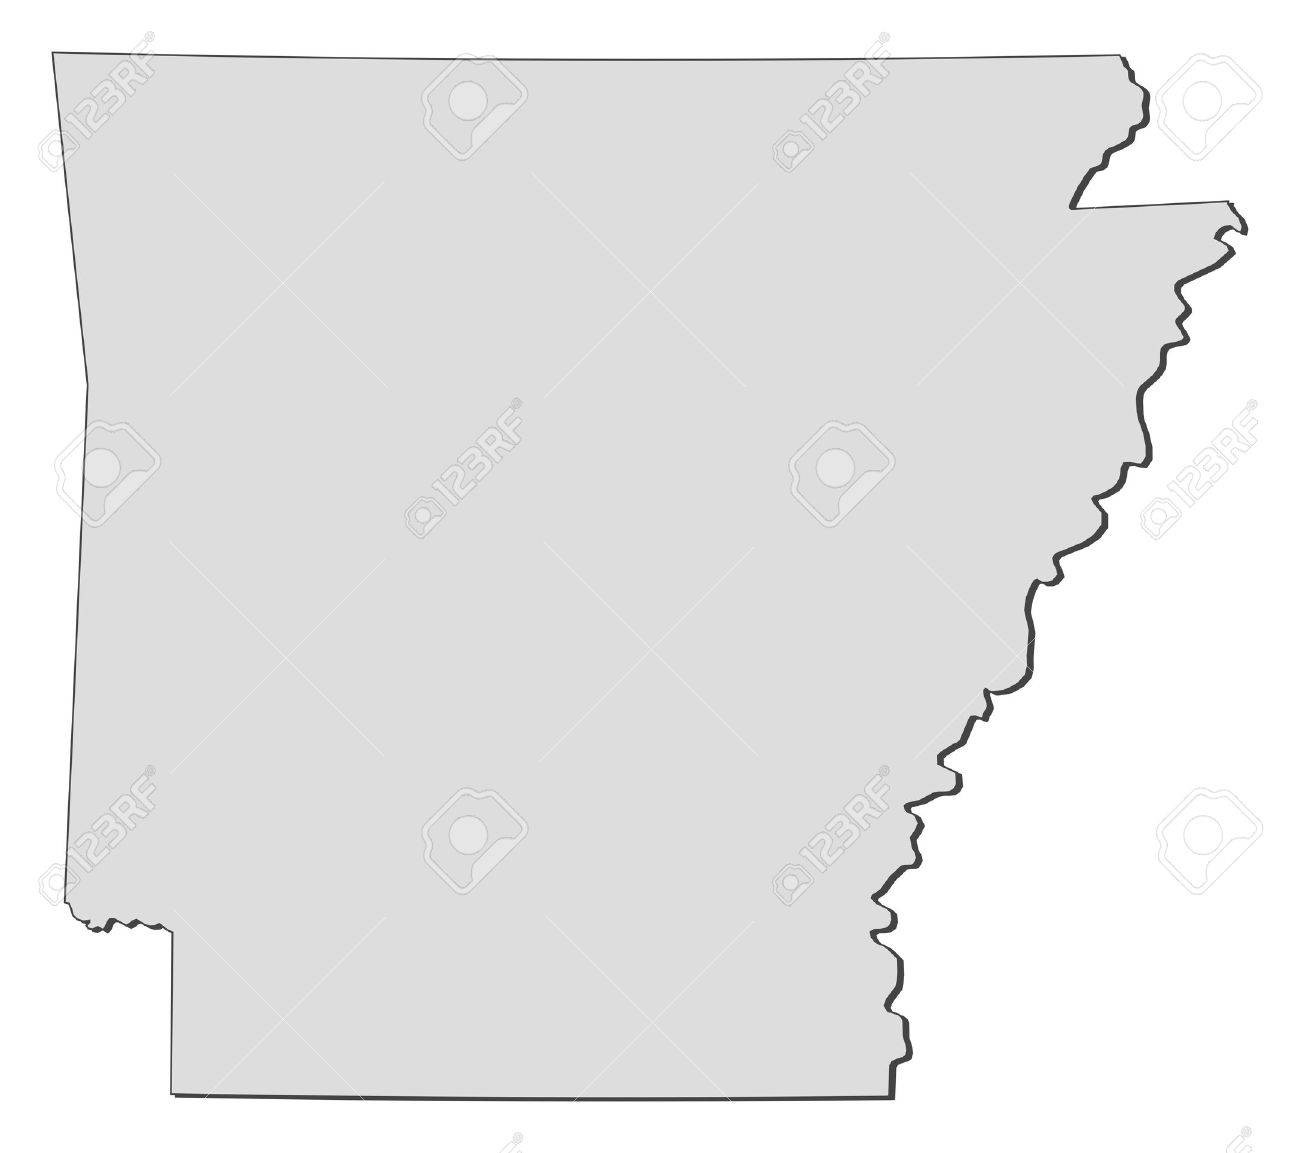 Alabama State Outline Vector